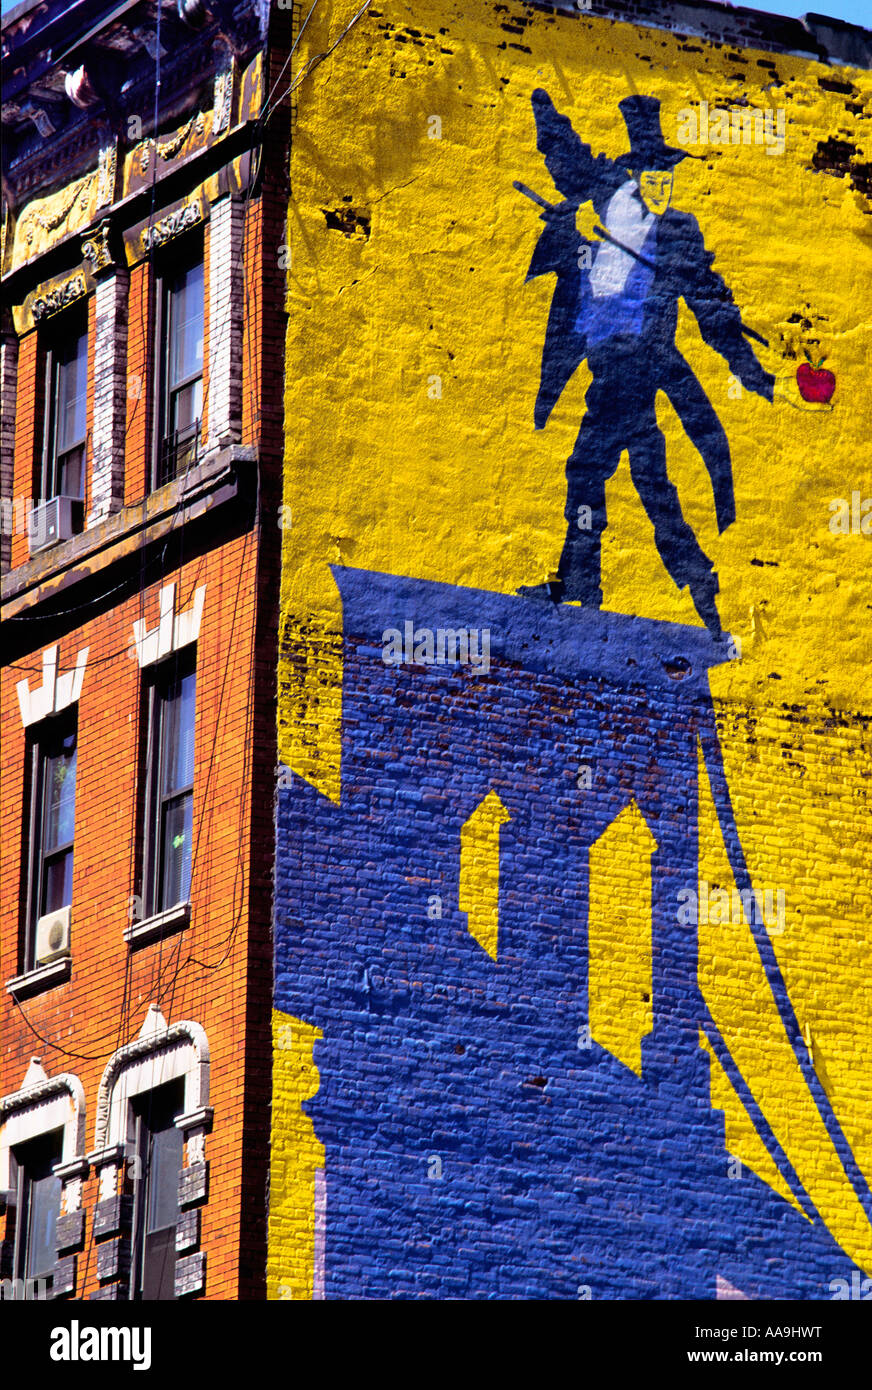 New York City SoHo Graffiti Art Painted Wall Lower Manhattan USA ...